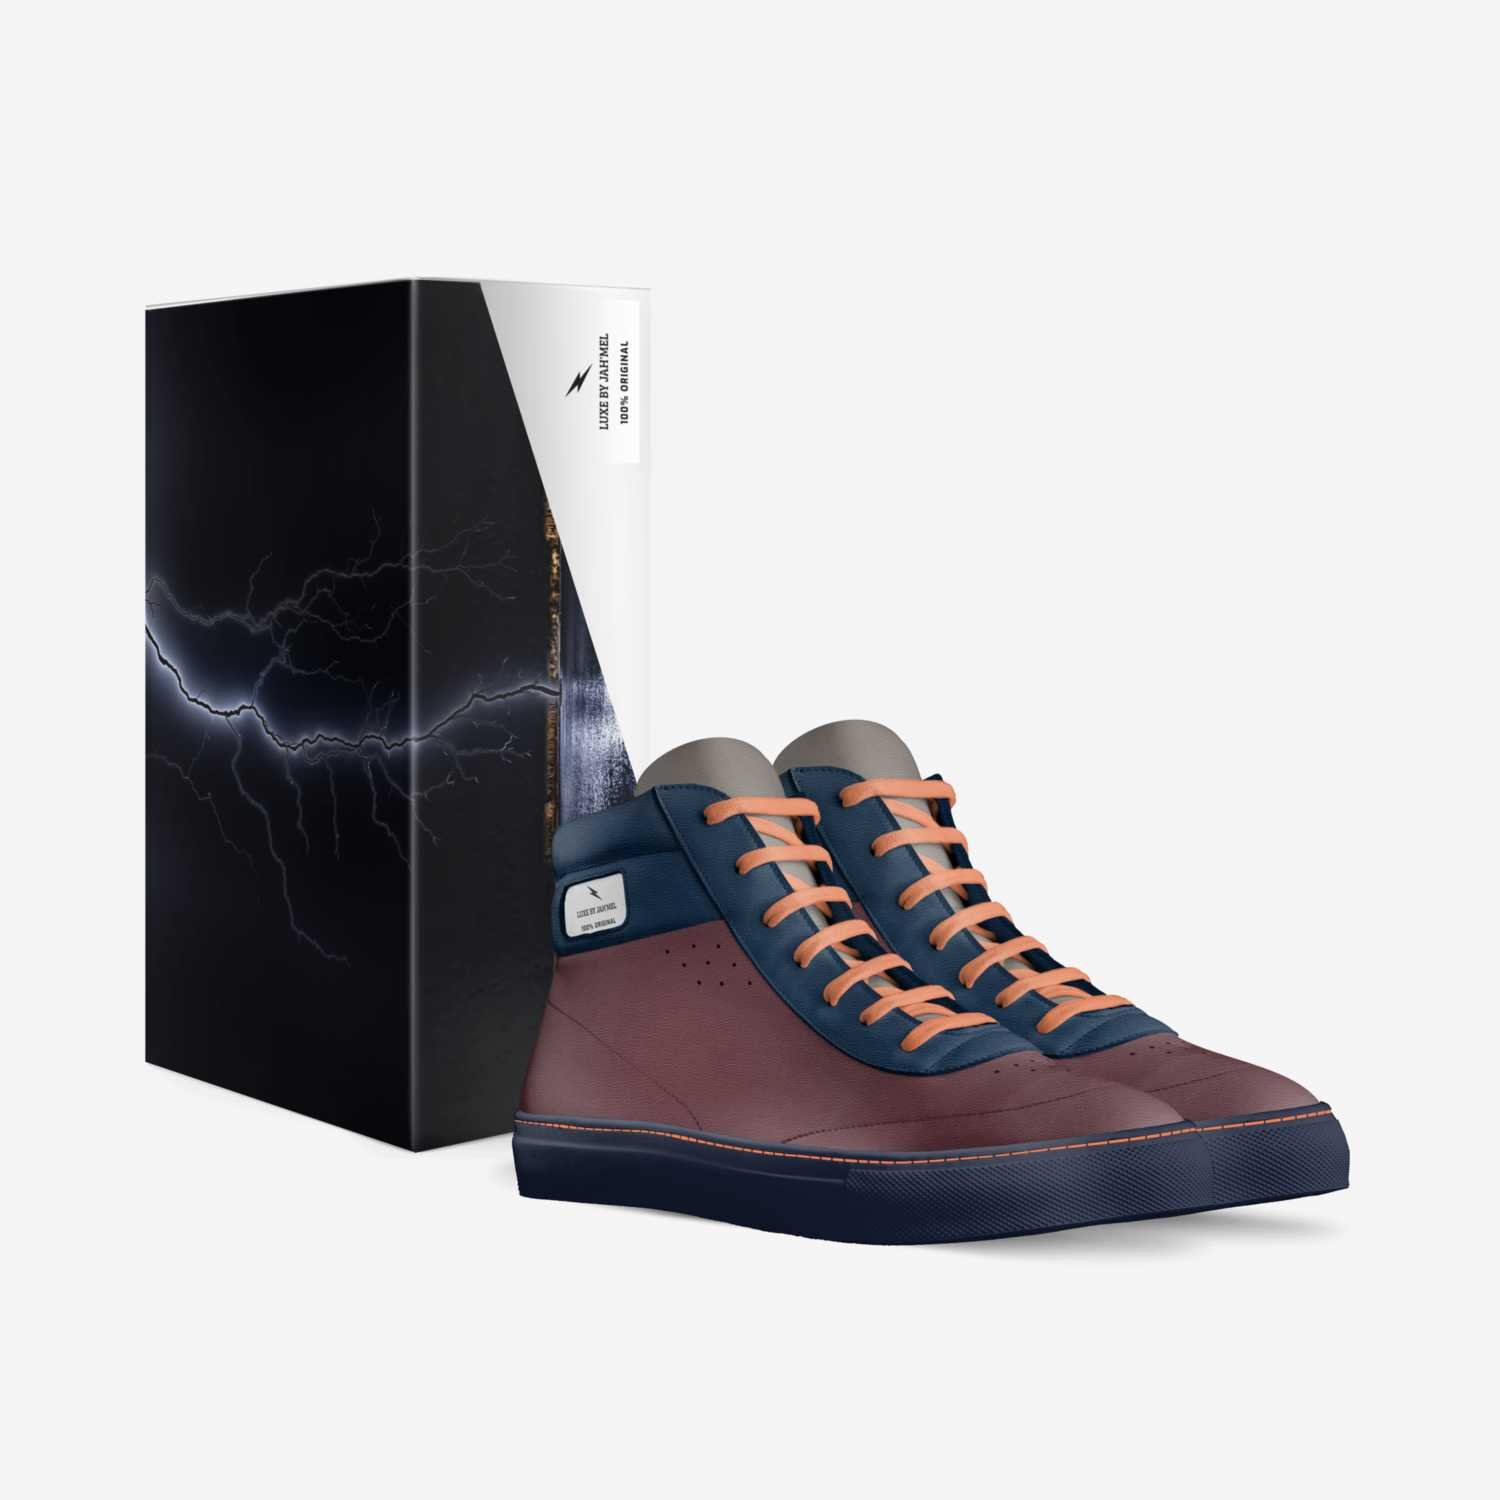 LUXE BY Jah'Mel custom made in Italy shoes by Jamel Smalls | Box view